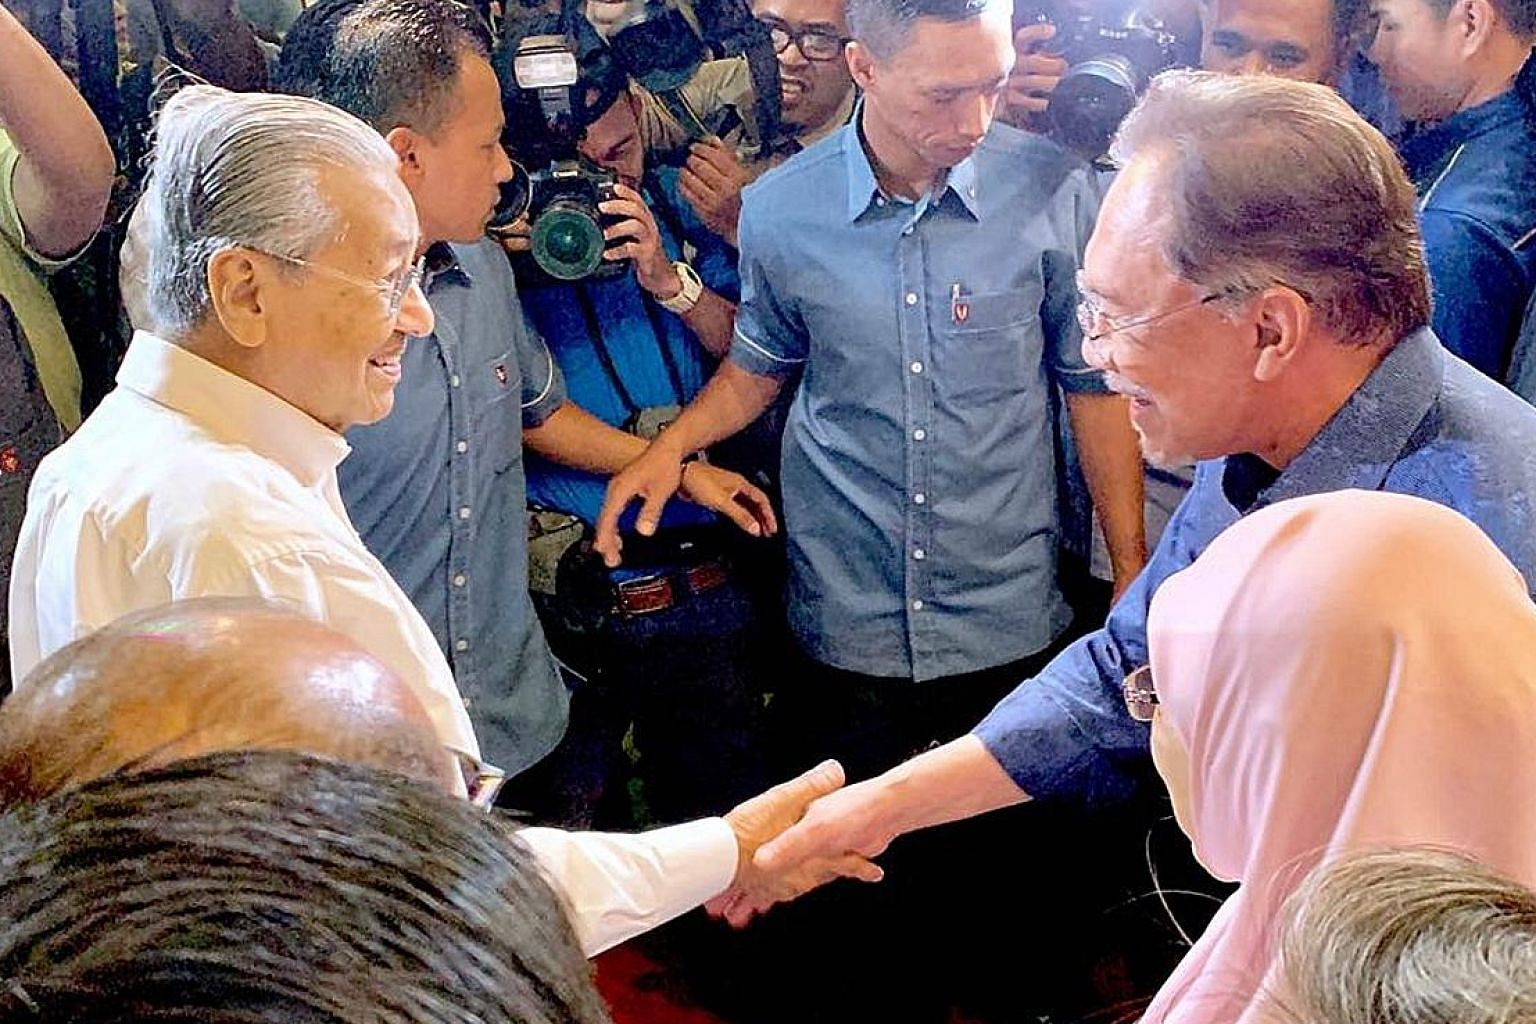 Malaysian Prime Minister Mahathir Mohamad (left) being greeted by Parti Keadilan Rakyat president Anwar Ibrahim on arrival at the party's retreat in Port Dickson yesterday. ST PHOTO: SHANNON TEOH